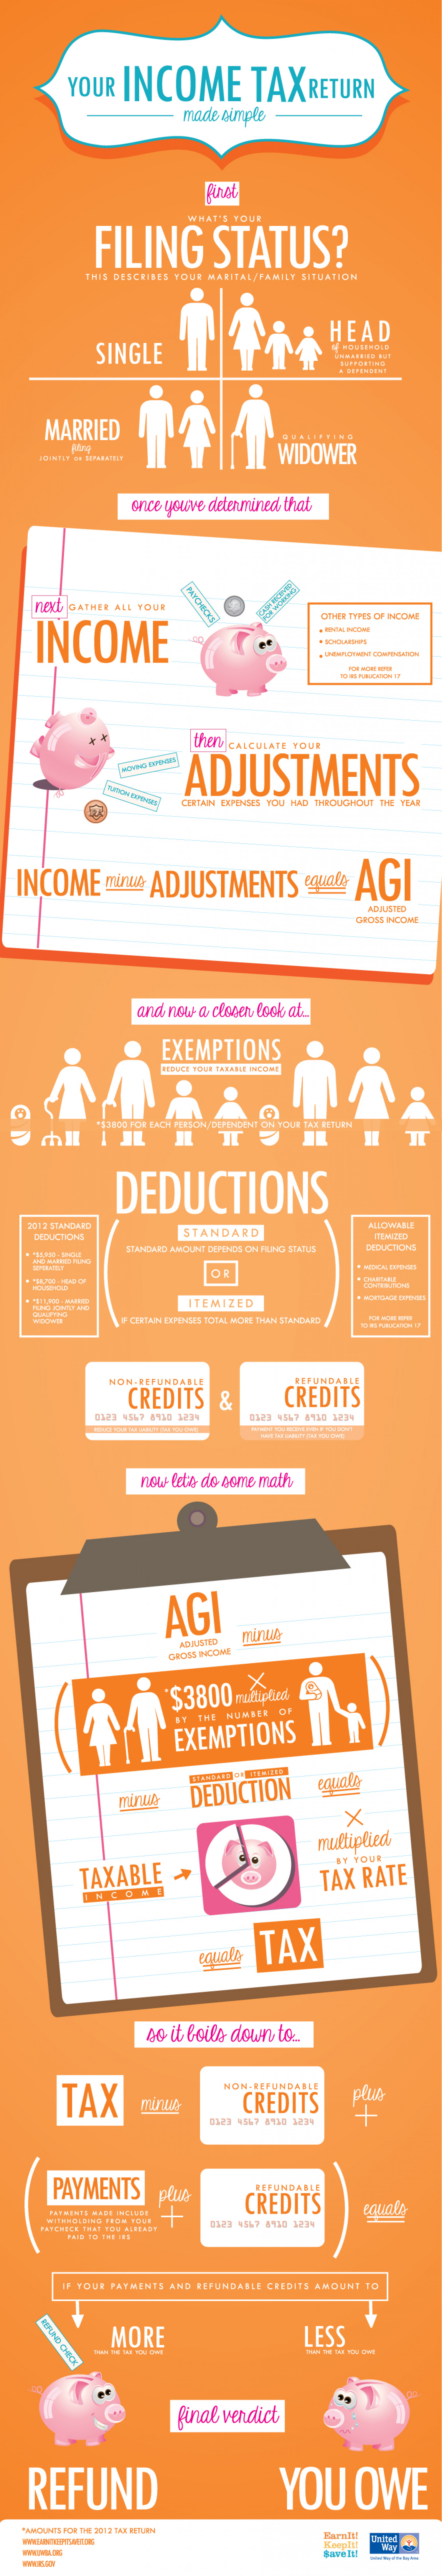 Your Income Tax Return - Made Simple Infographic